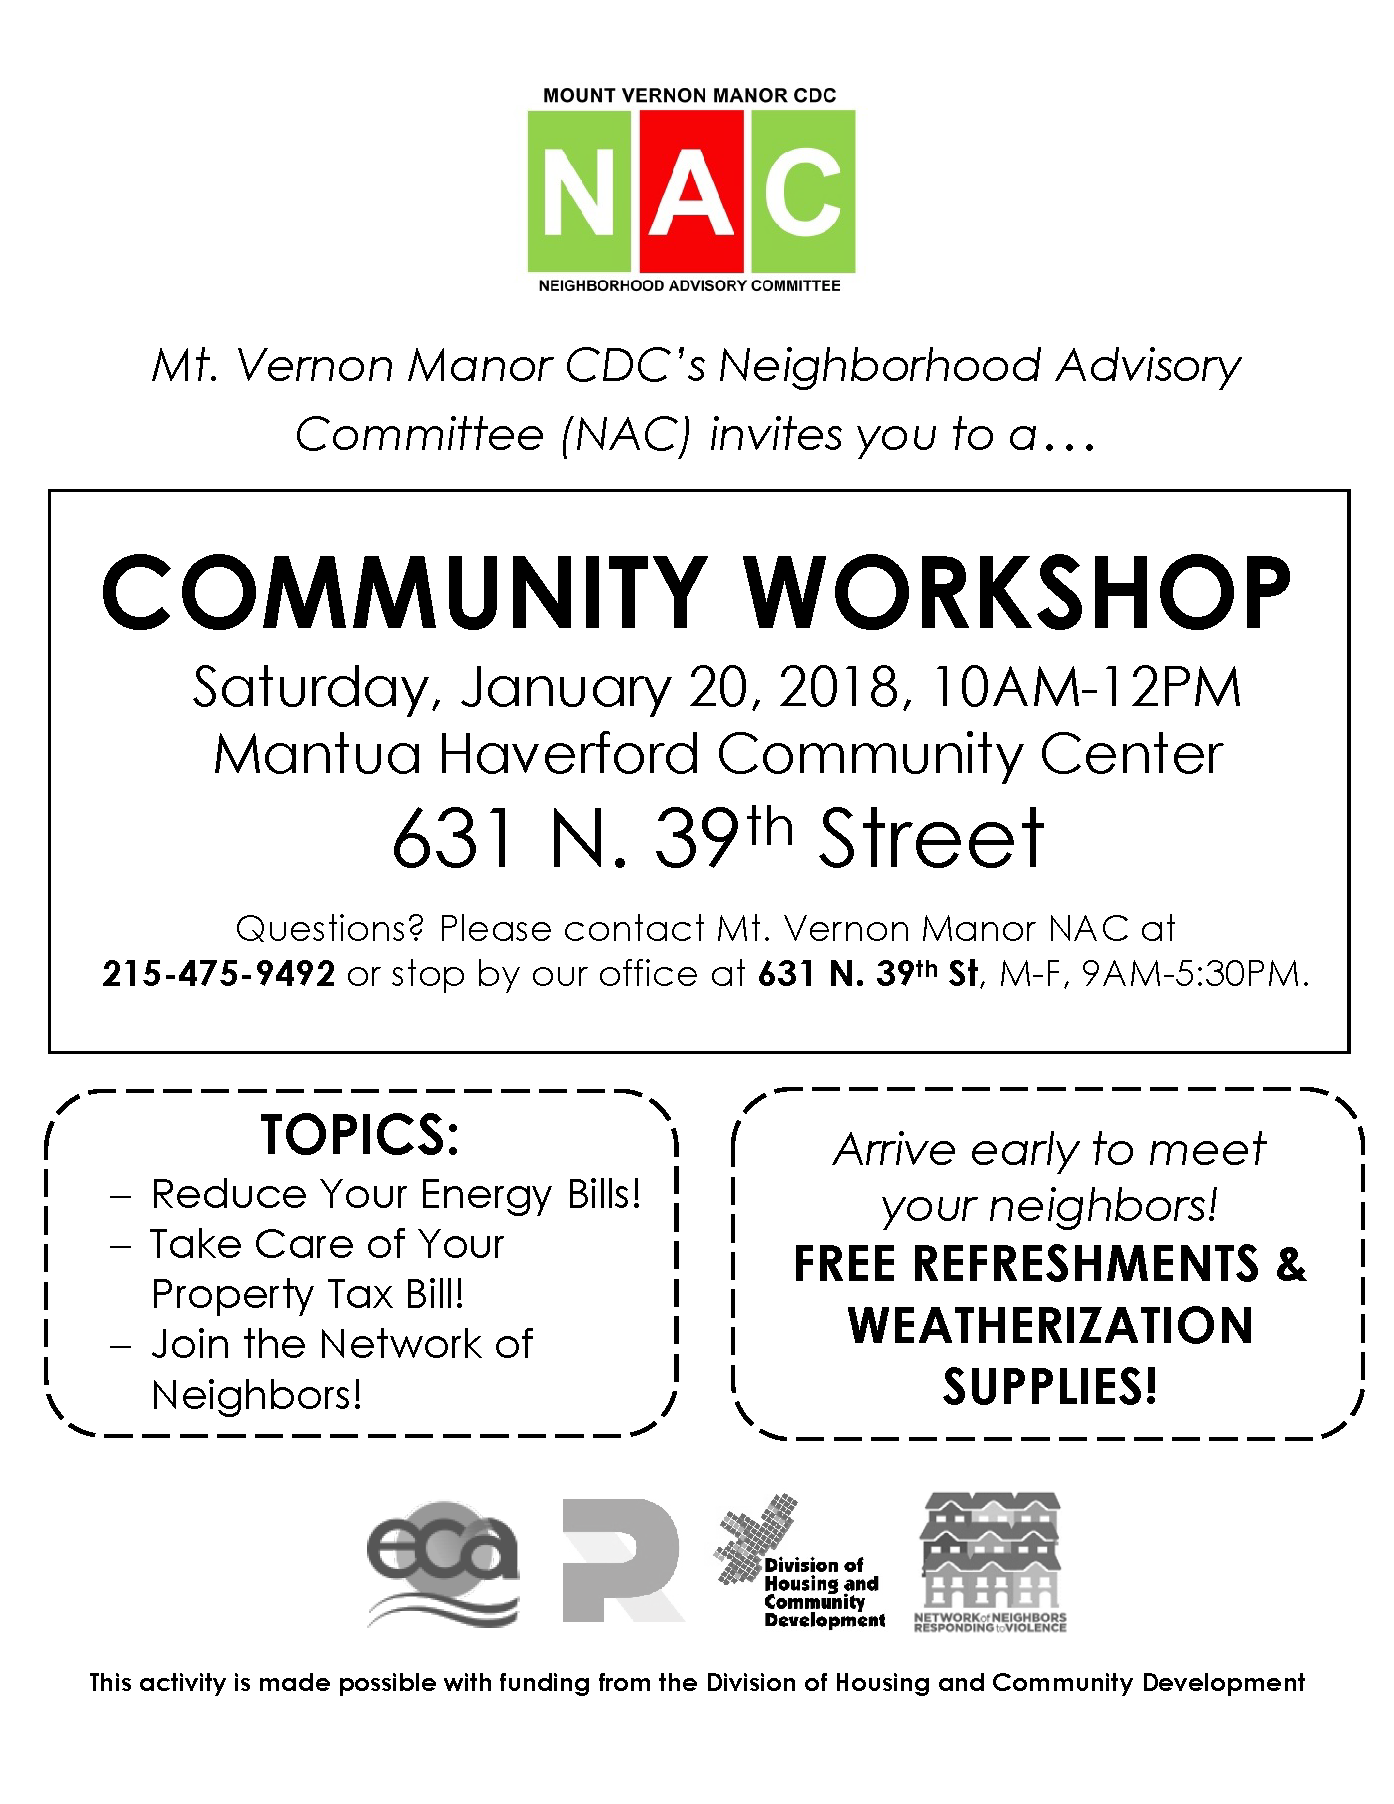 January 20 Community Workshop Flyer